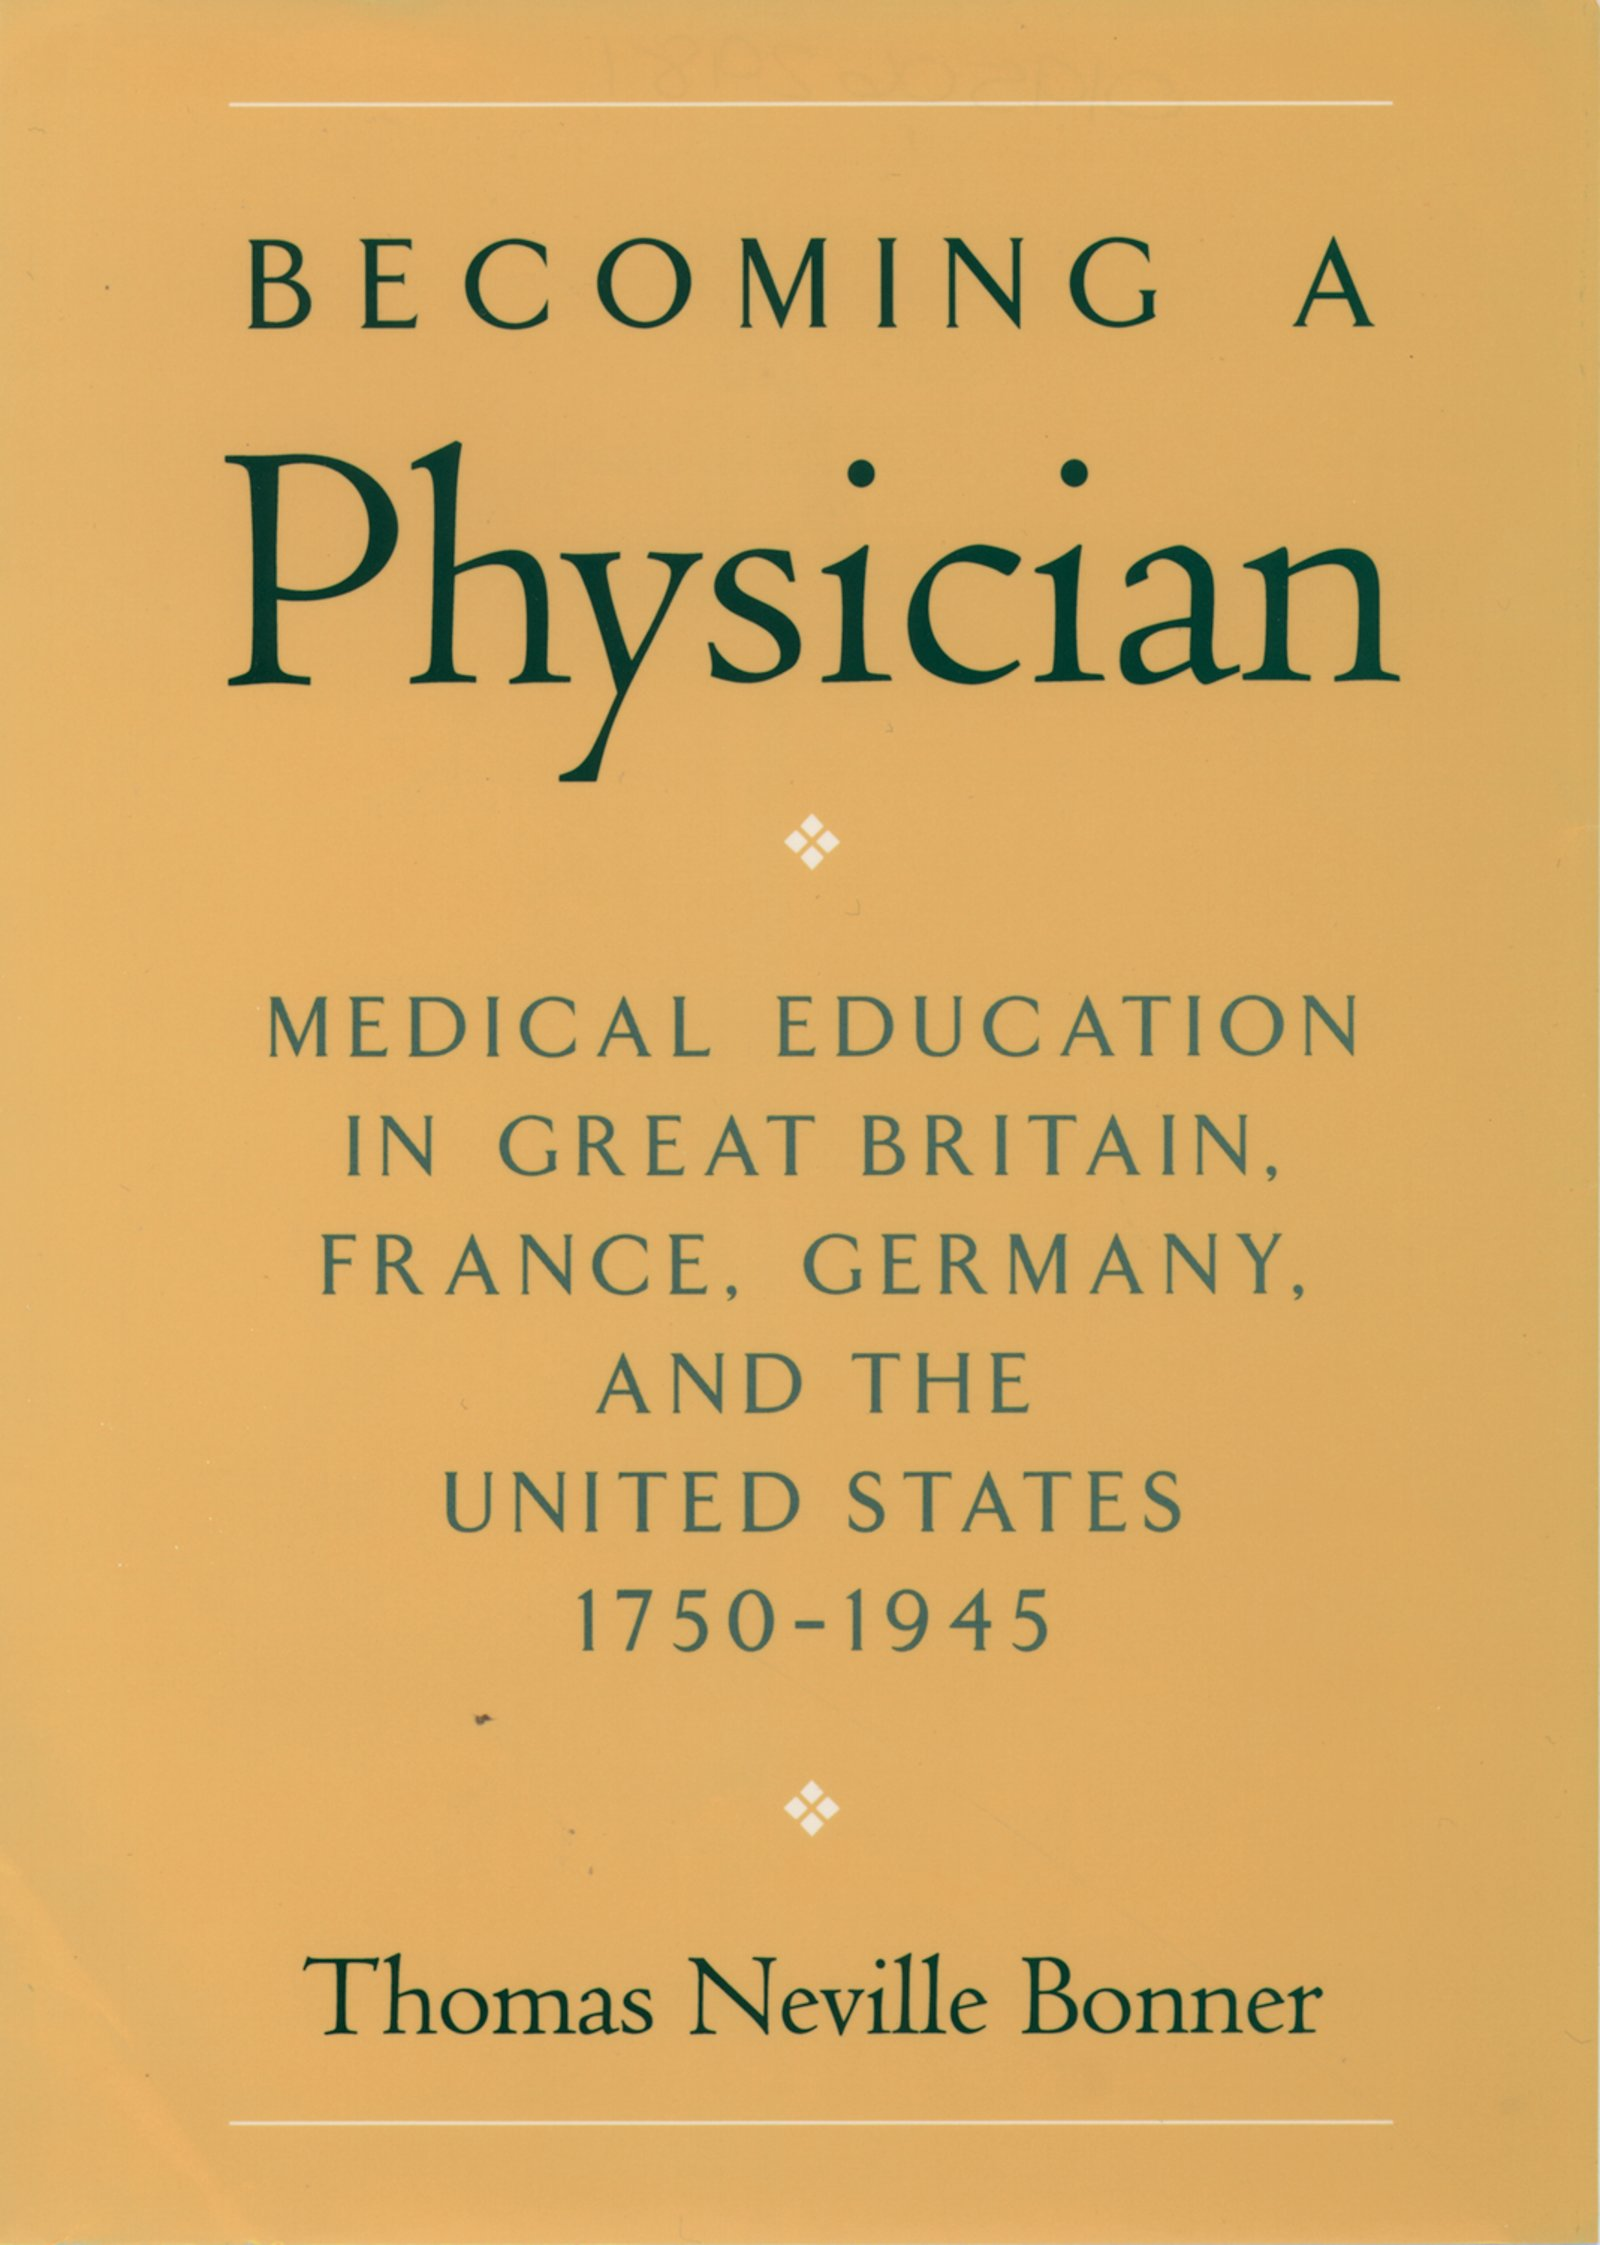 Becoming a PhysicianMedical Education in Great Britain, France, Germany, and the United States, 1750-1945